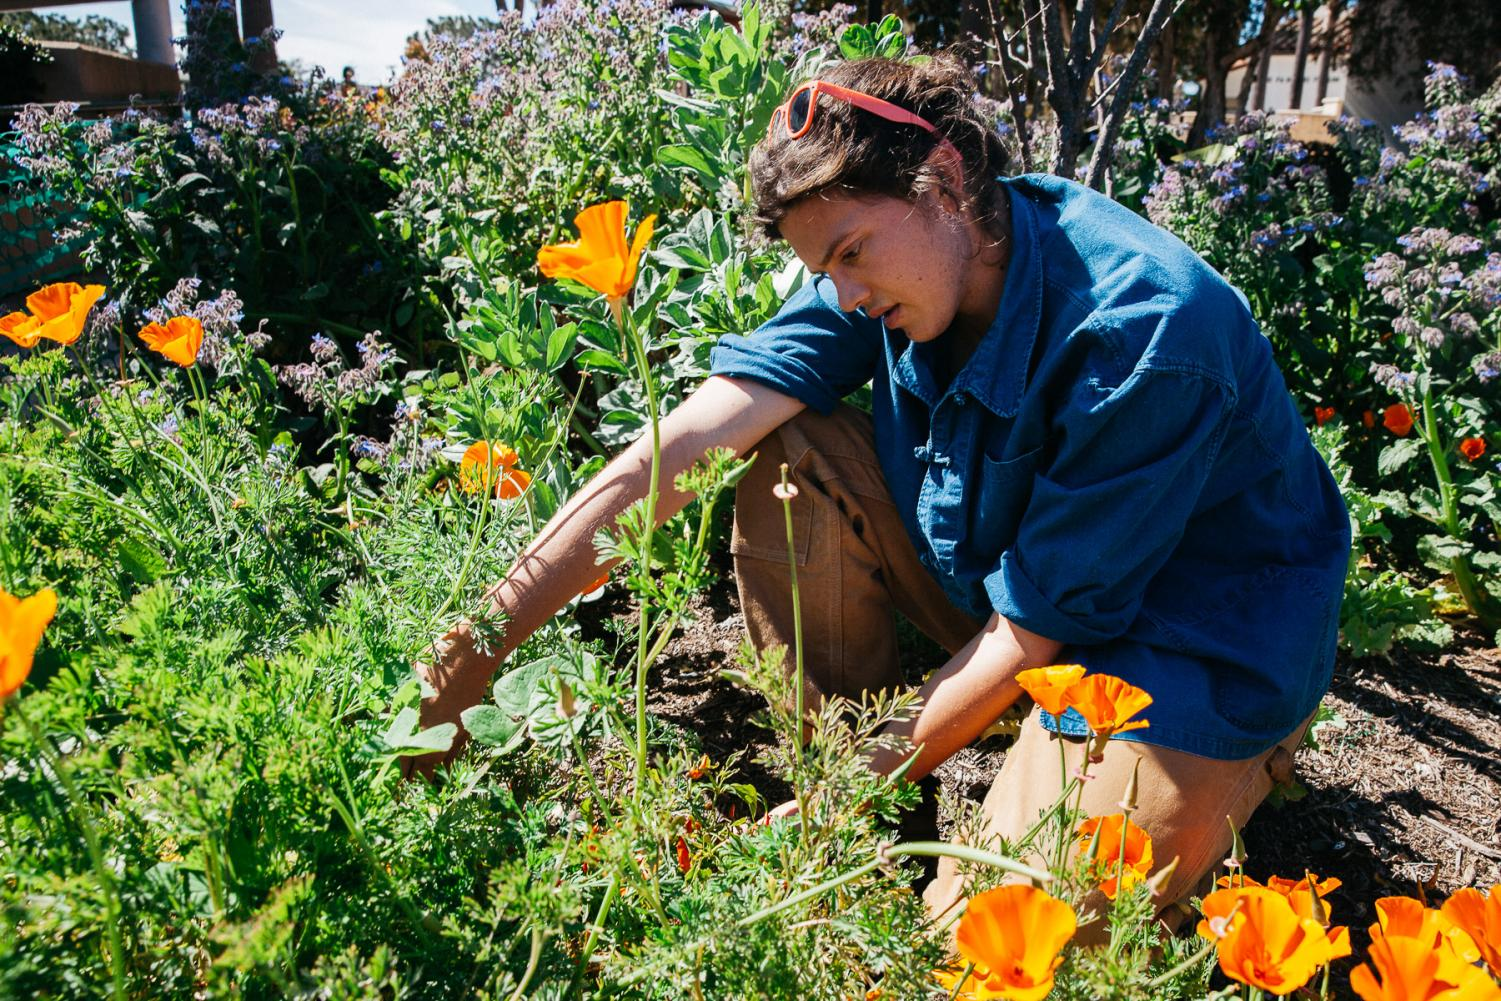 Jackson Hayes pulls invasive weeds from the permaculture garden on Thursday, March 14, 2019, on West Campus at City College in Santa Barbara, Calif. Hayes believes the recent rain could result in a mini super bloom for the garden.